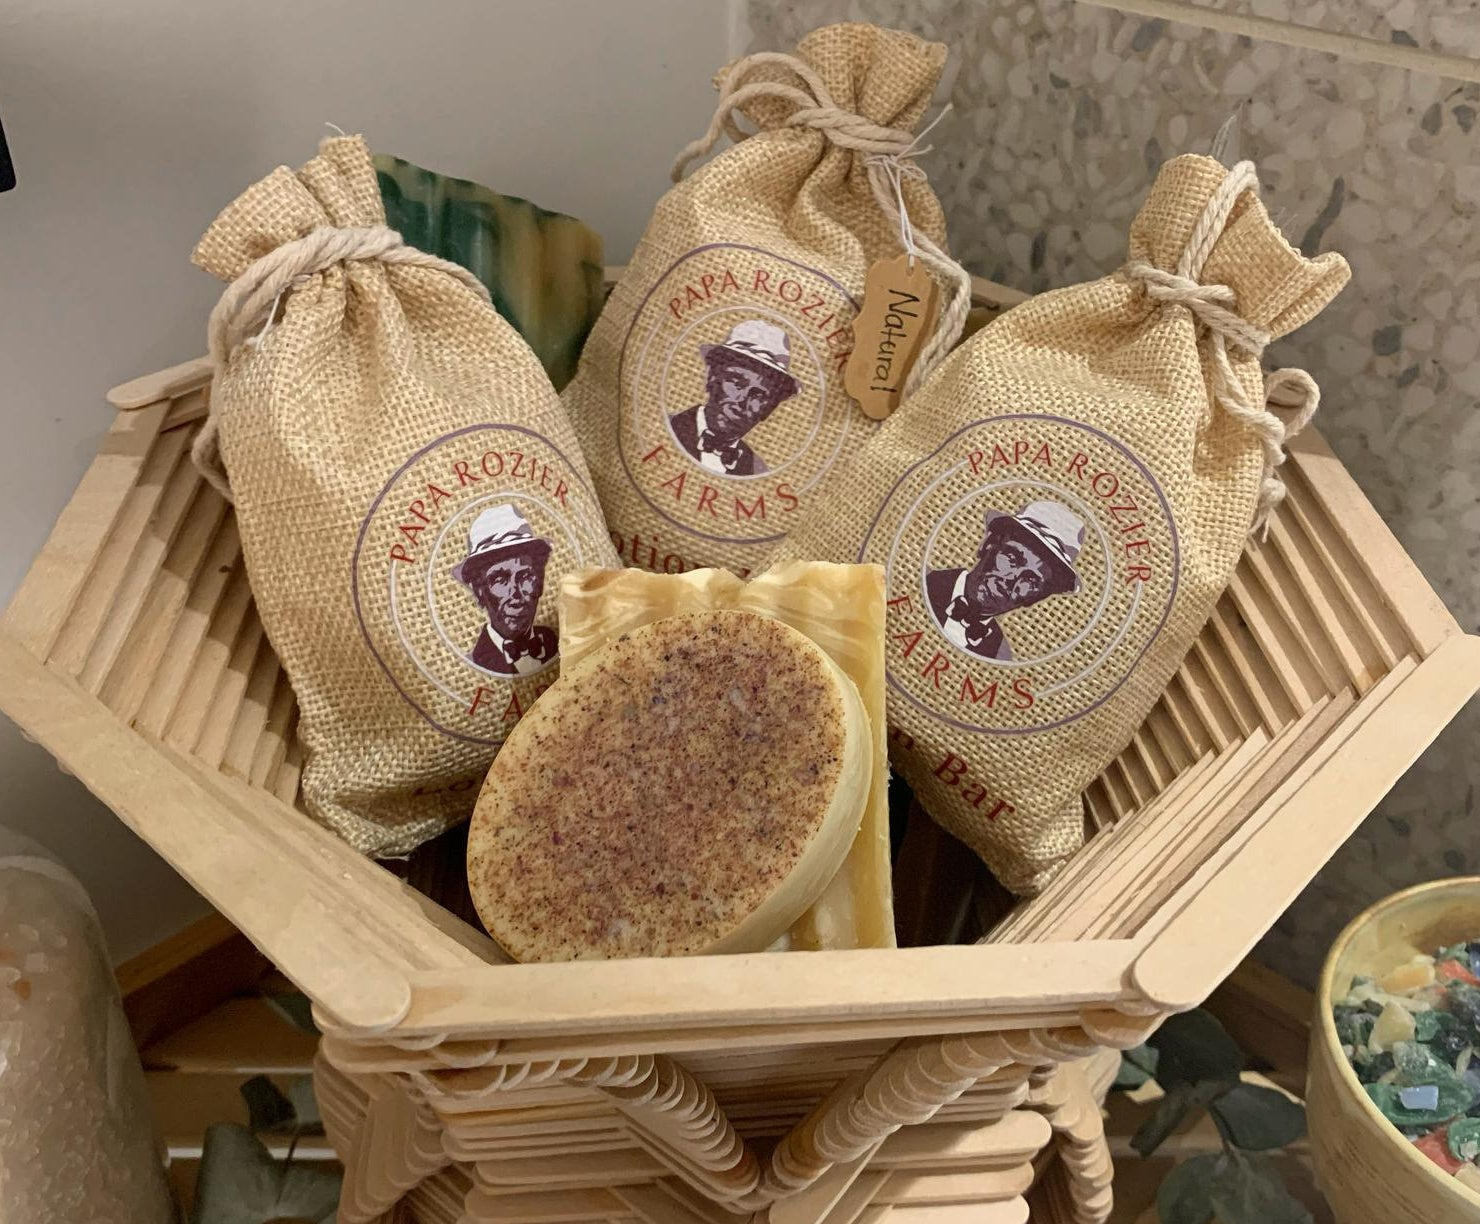 a lotion bar surrounded several others in burlap drawstring packaging